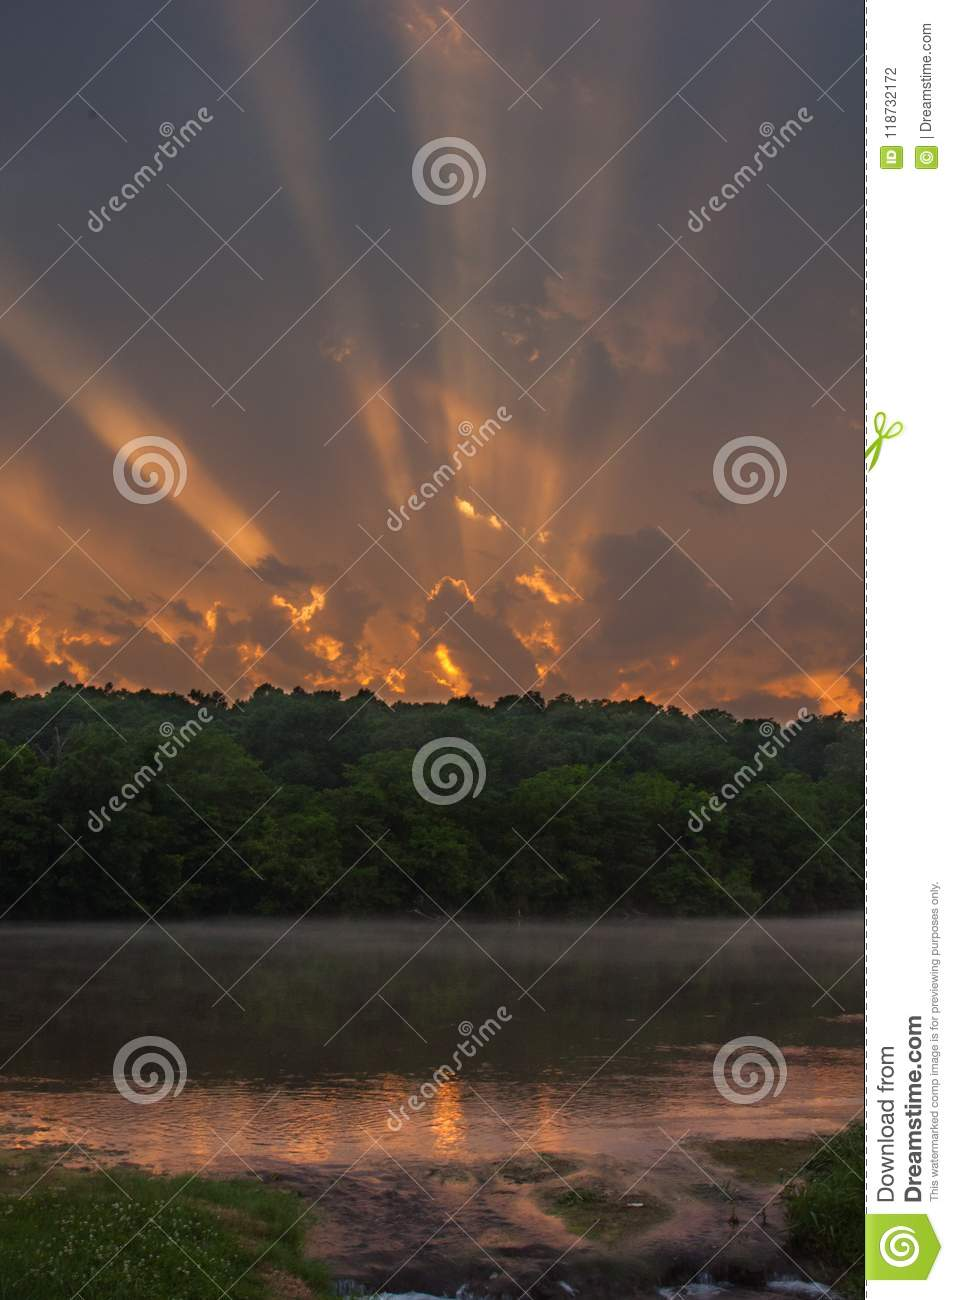 Sonnenuntergang über dem Srping-Fluss in Arkansas